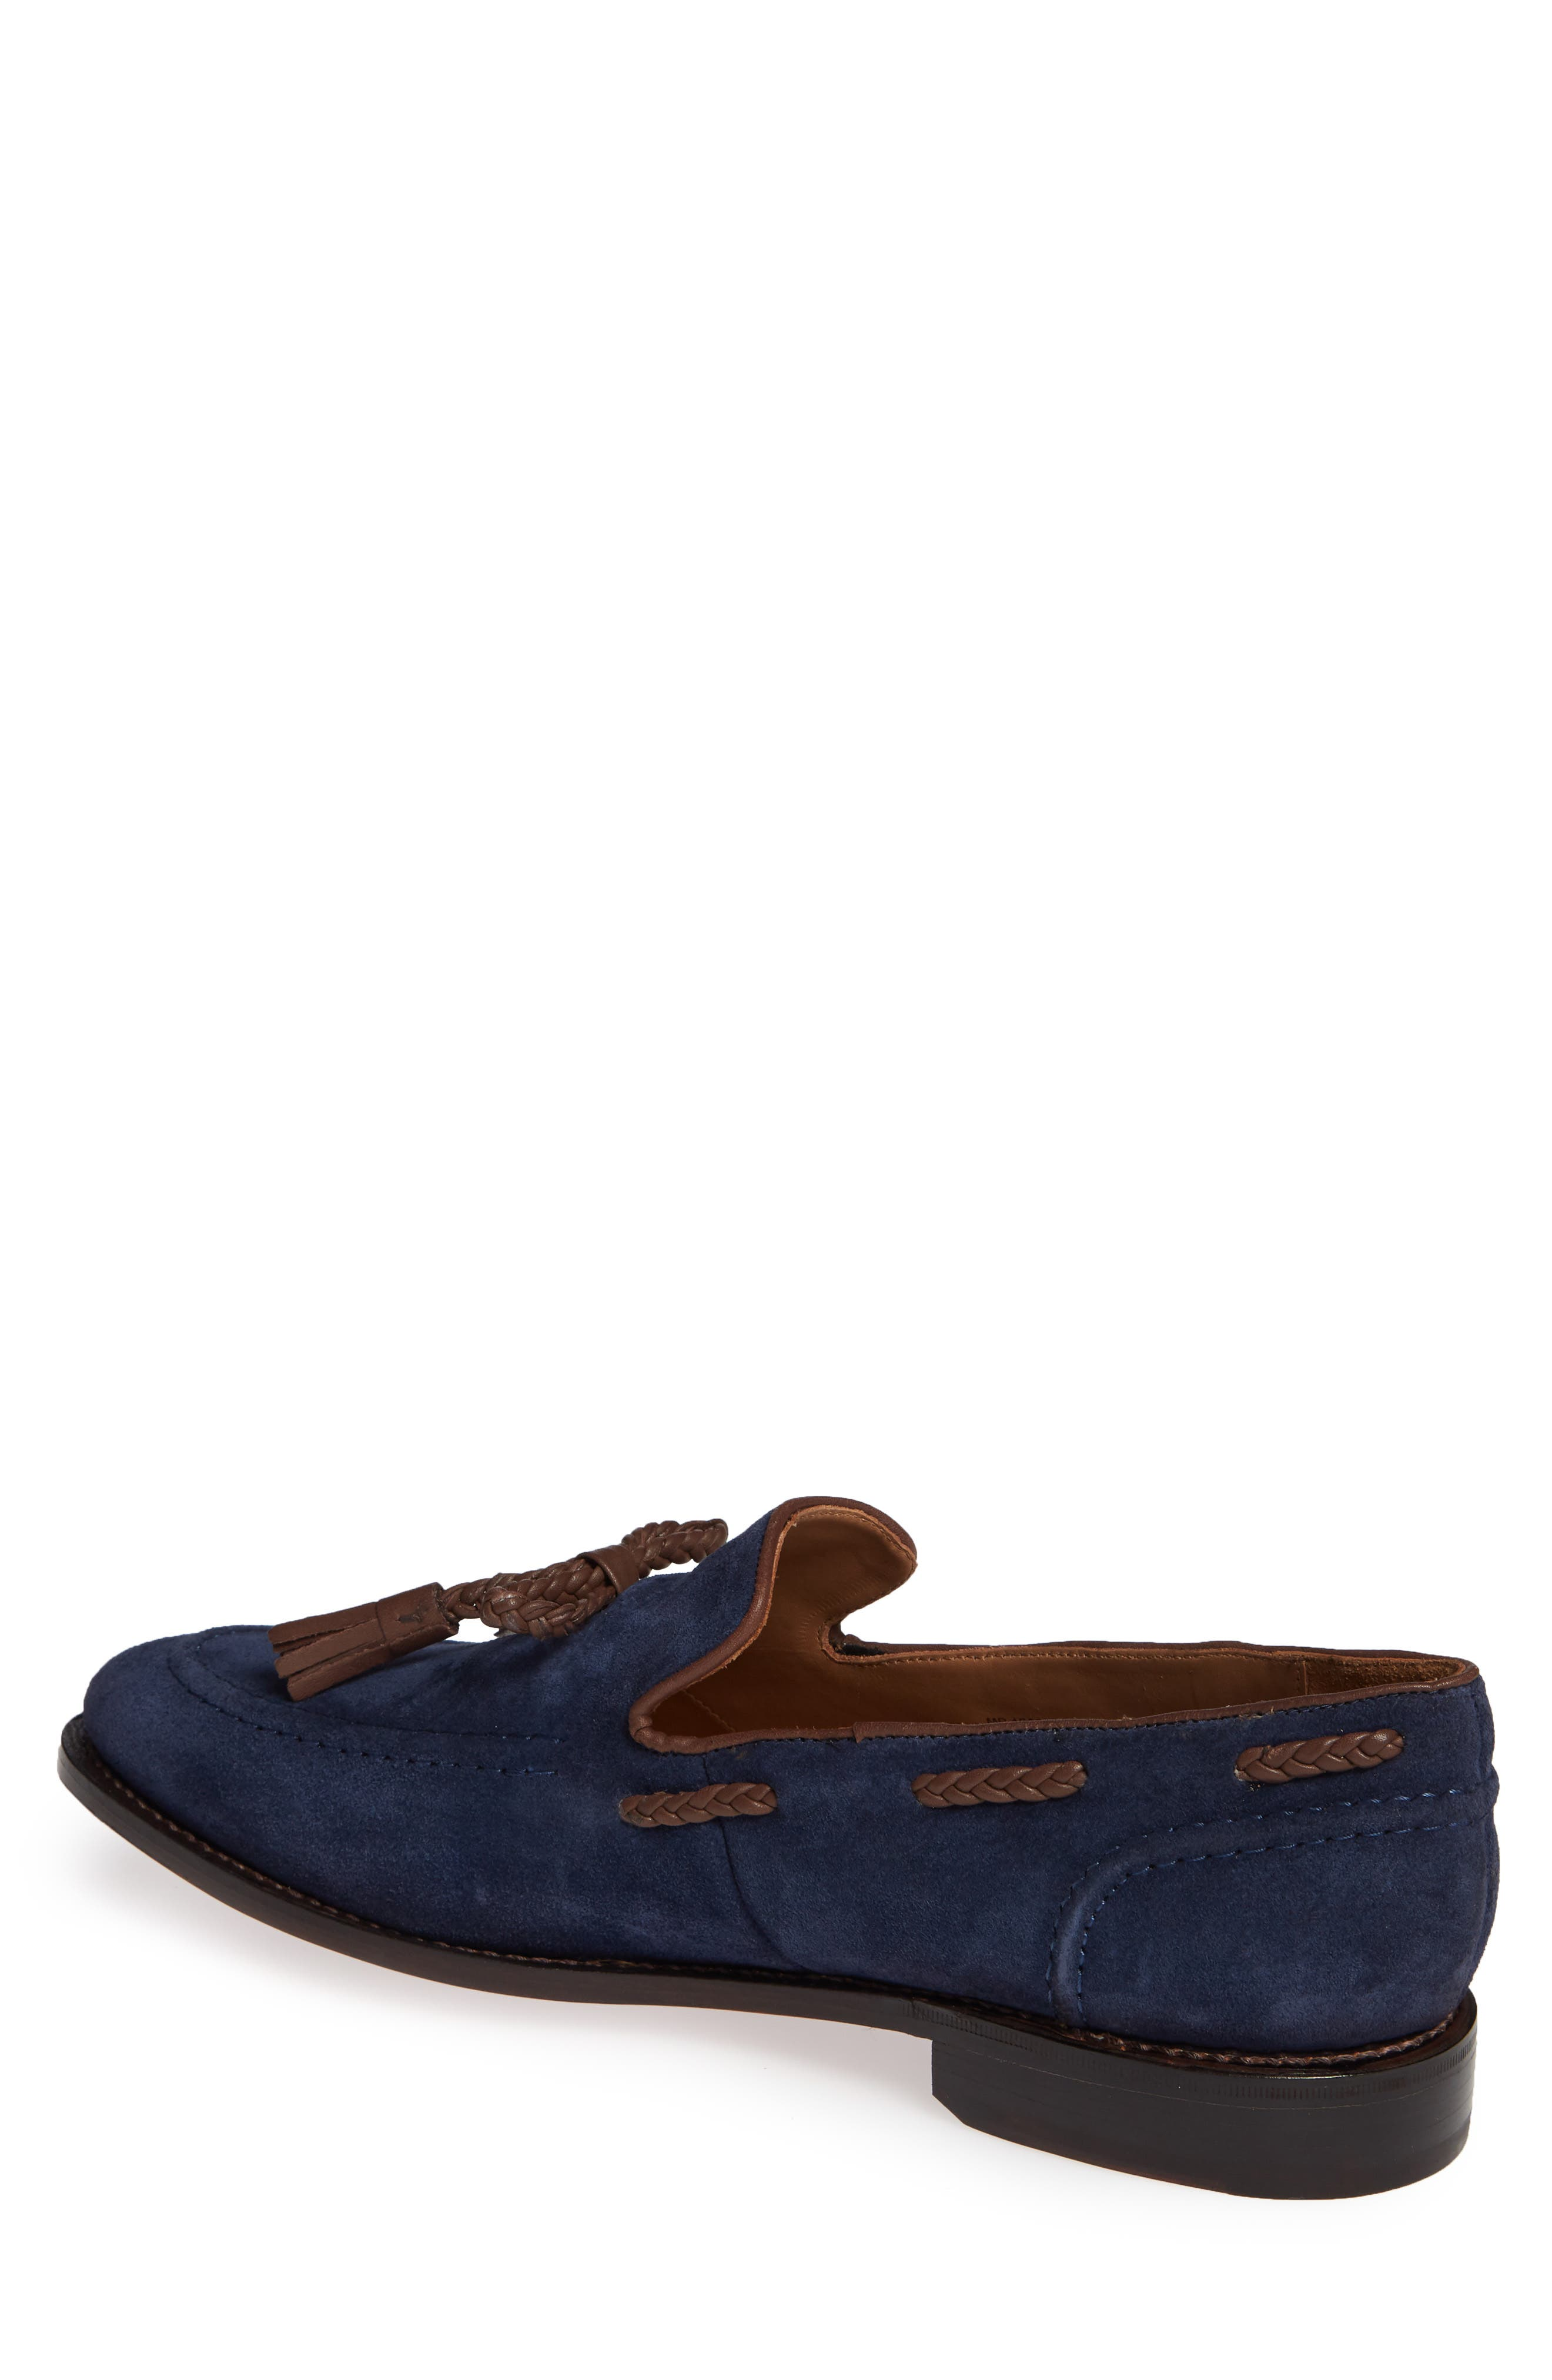 Braided Tassel Loafer,                             Alternate thumbnail 2, color,                             NAVY SUEDE